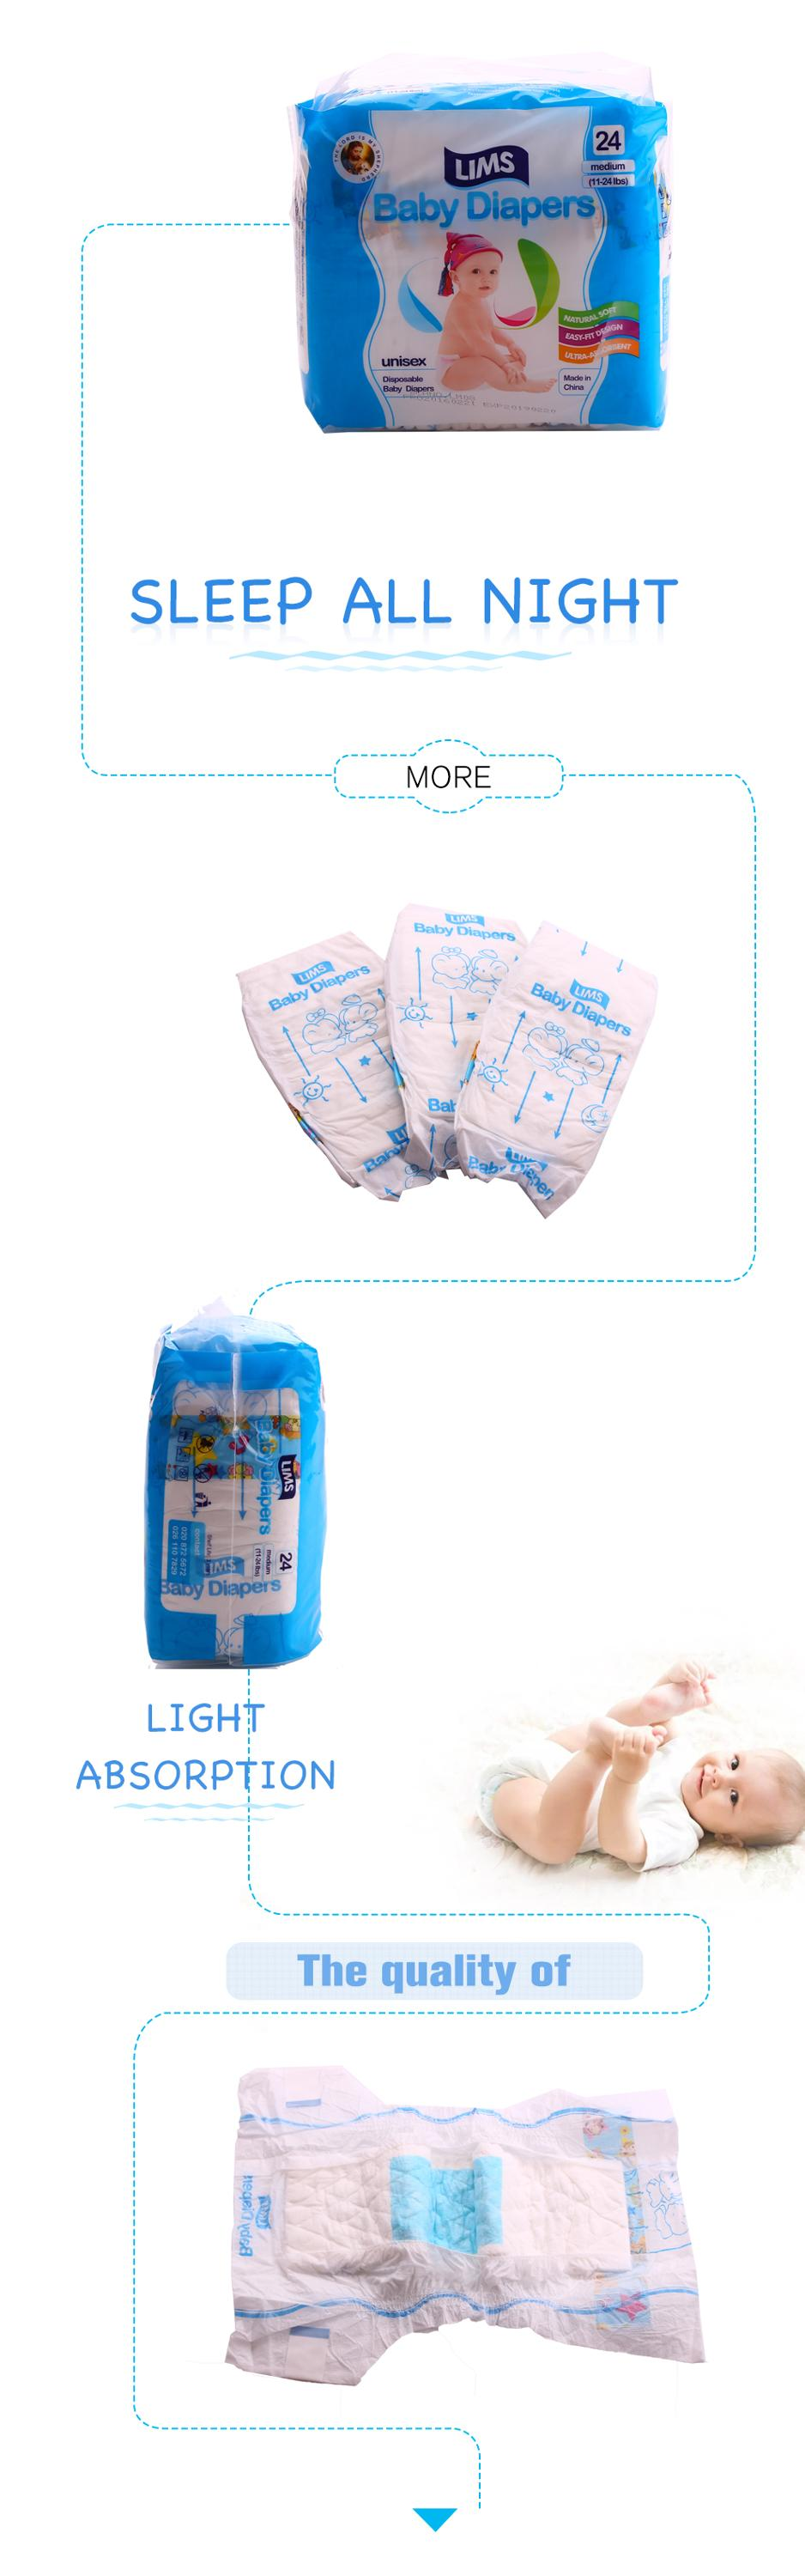 Dry Surface Absorption And Leak Guard Anti-Leak Baby Diapers